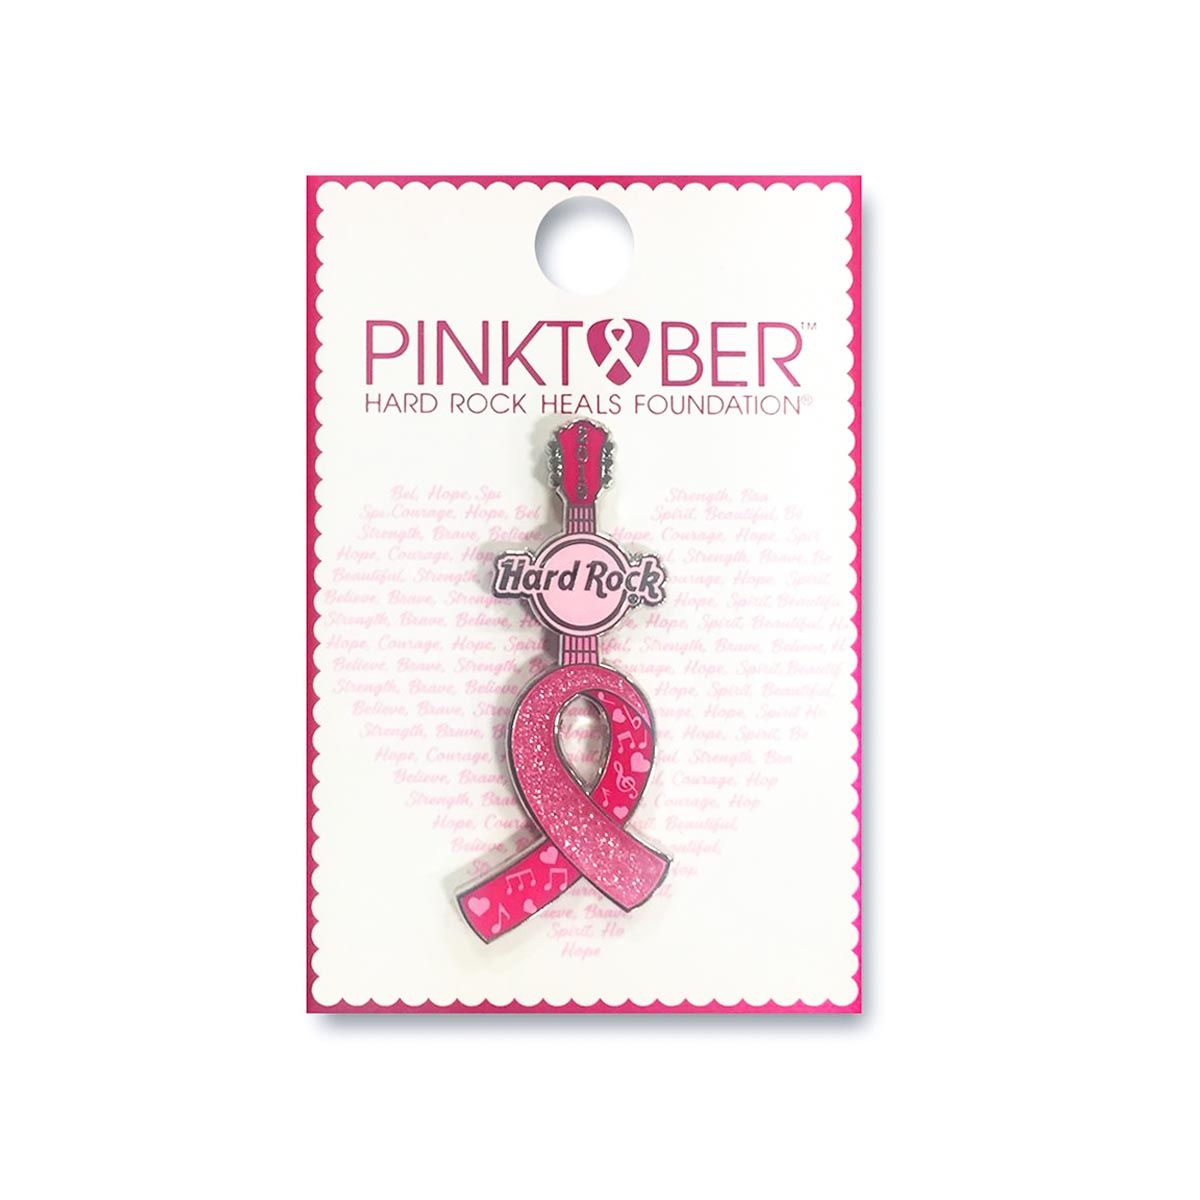 Pinktober Ribbon Pin 2019